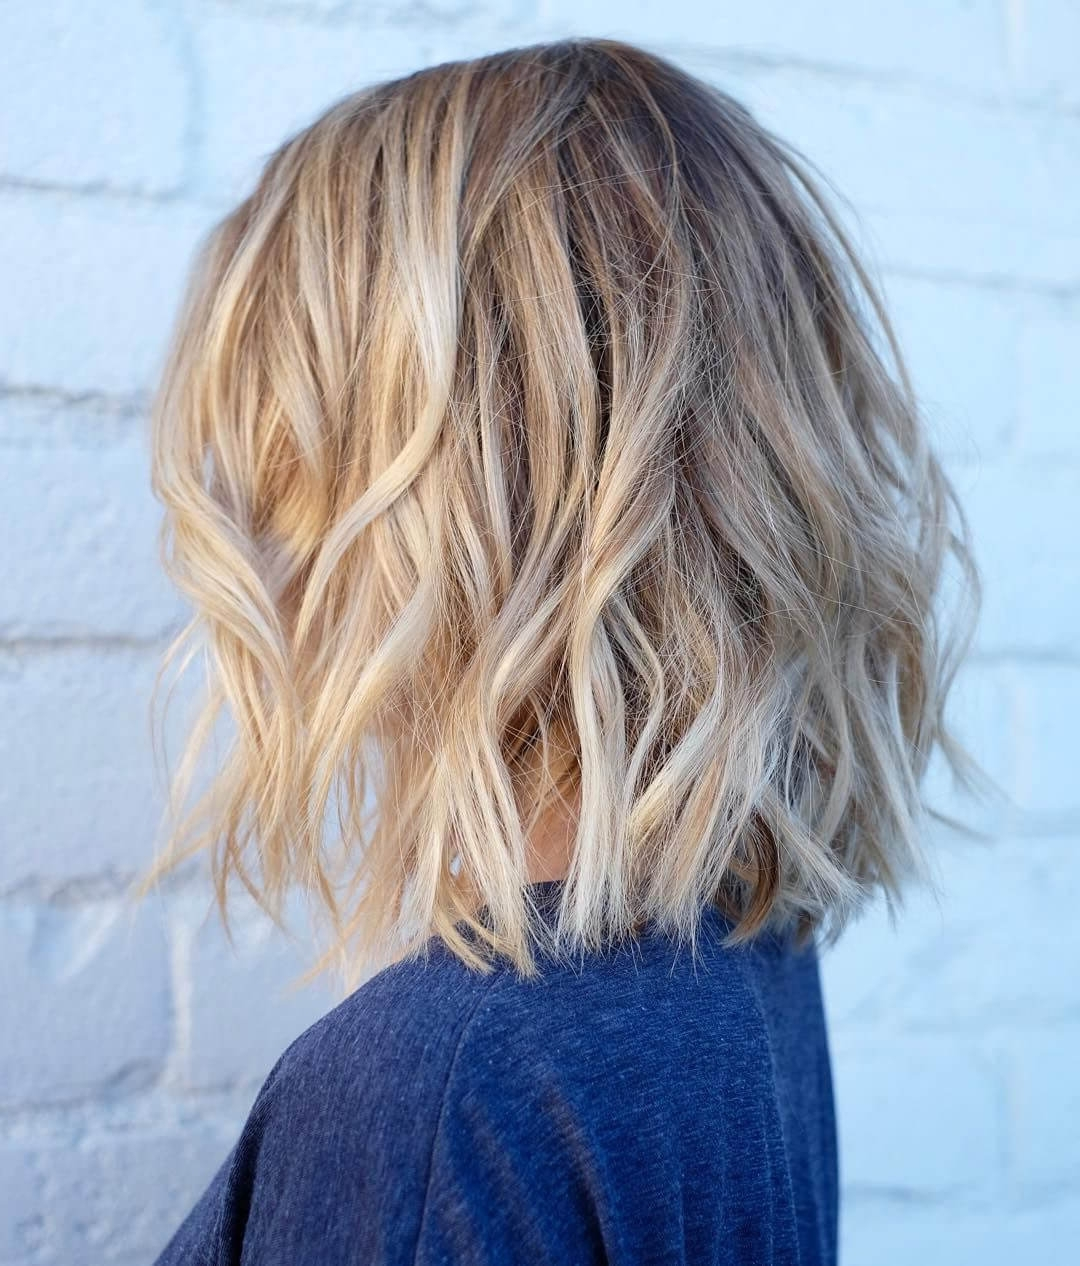 Most Recently Released Tousled Shoulder Length Ombre Blonde Hairstyles Within 50 Fresh Short Blonde Hair Ideas To Update Your Style In (View 11 of 20)